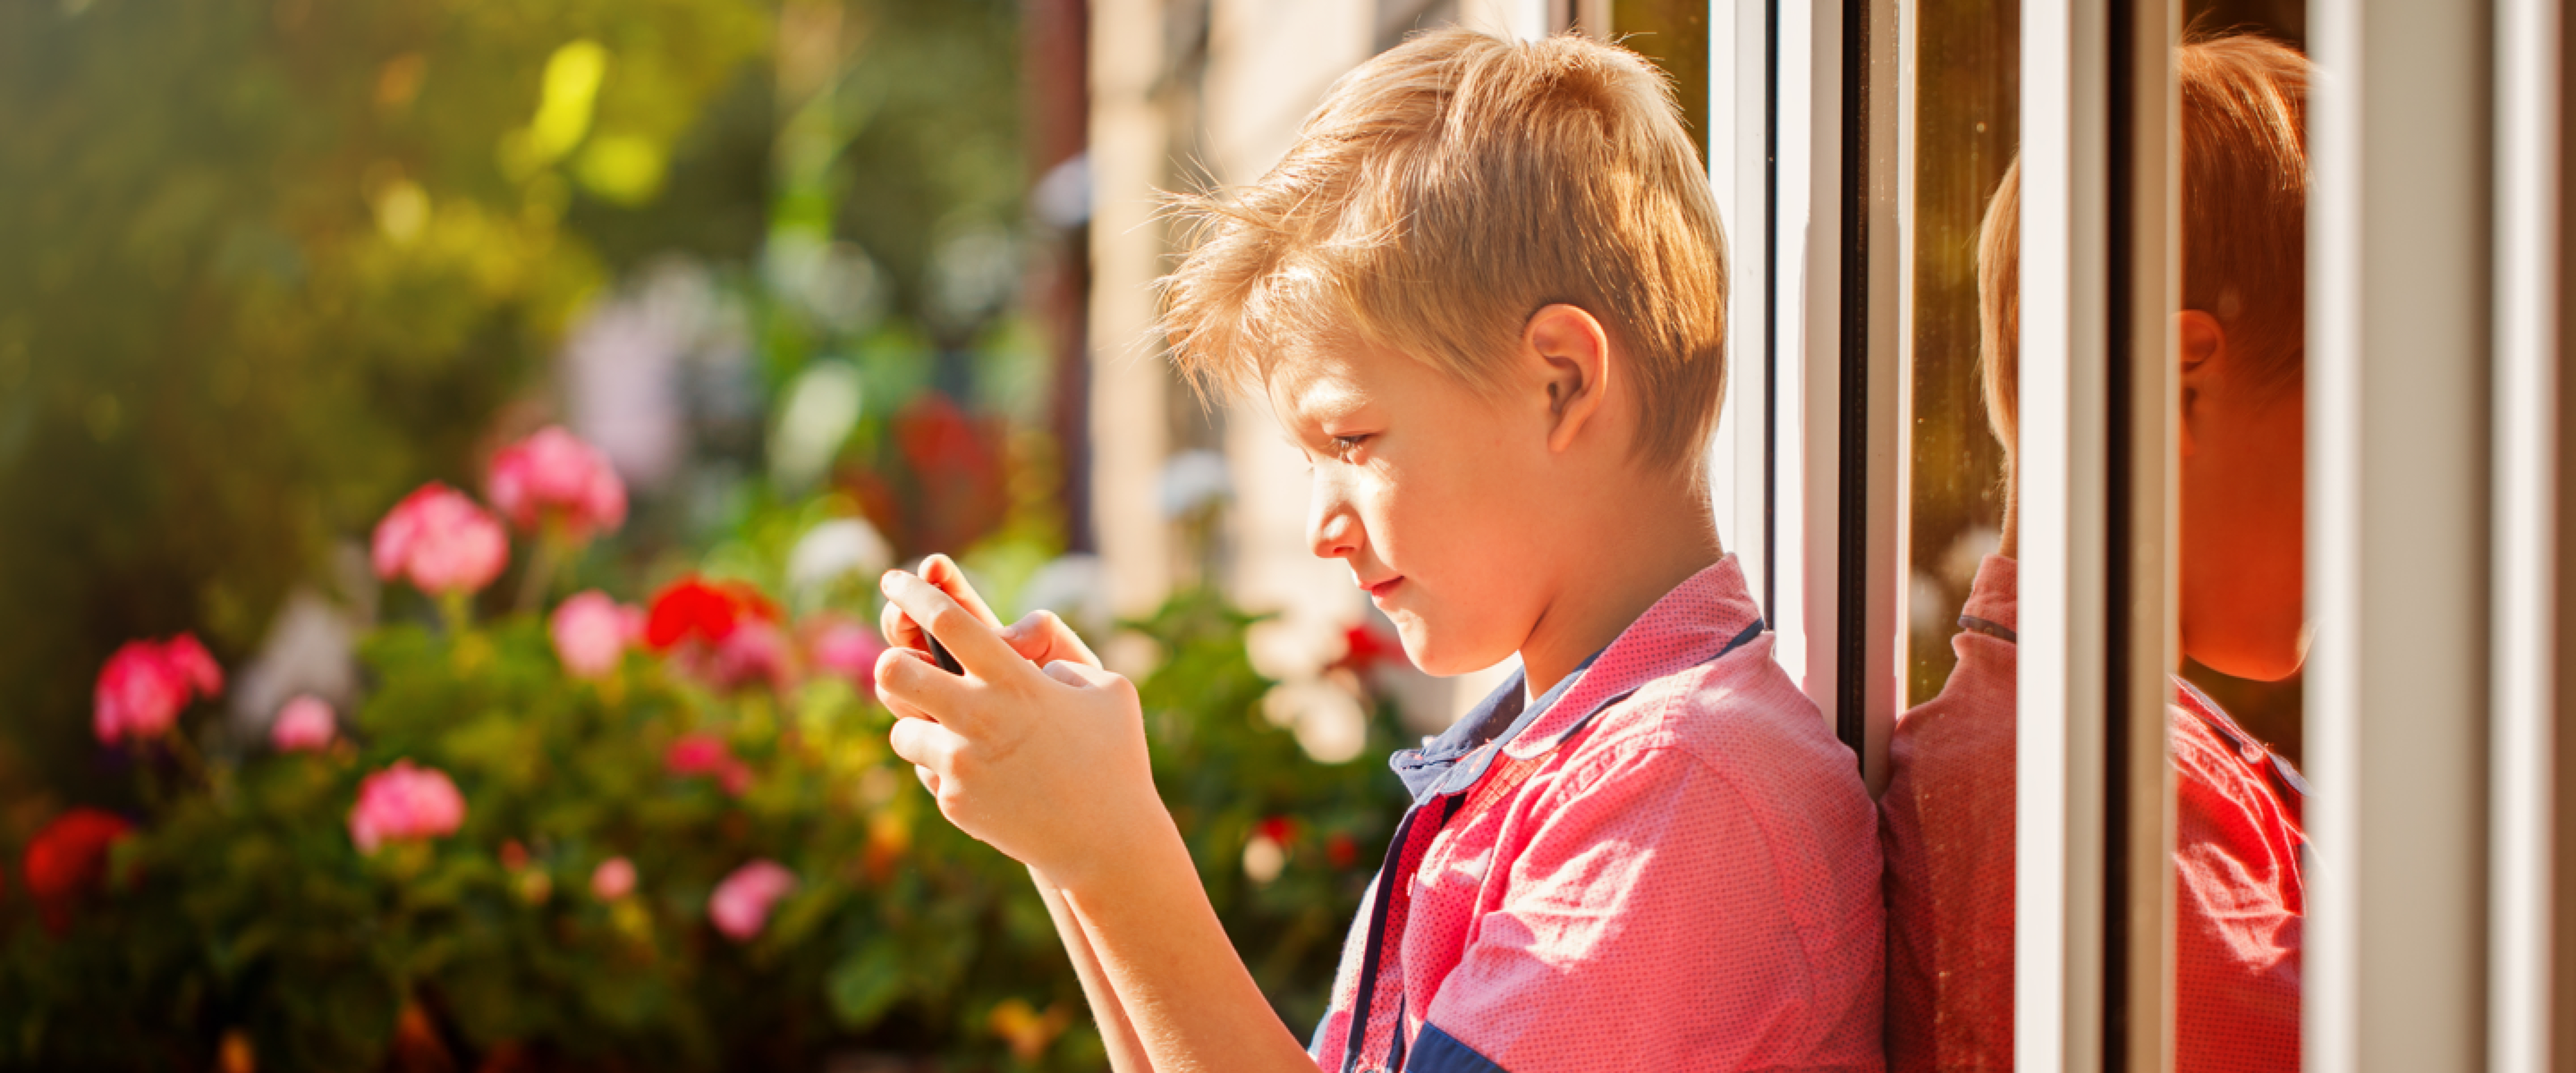 Photograph of a boy looking at a phone in a garden